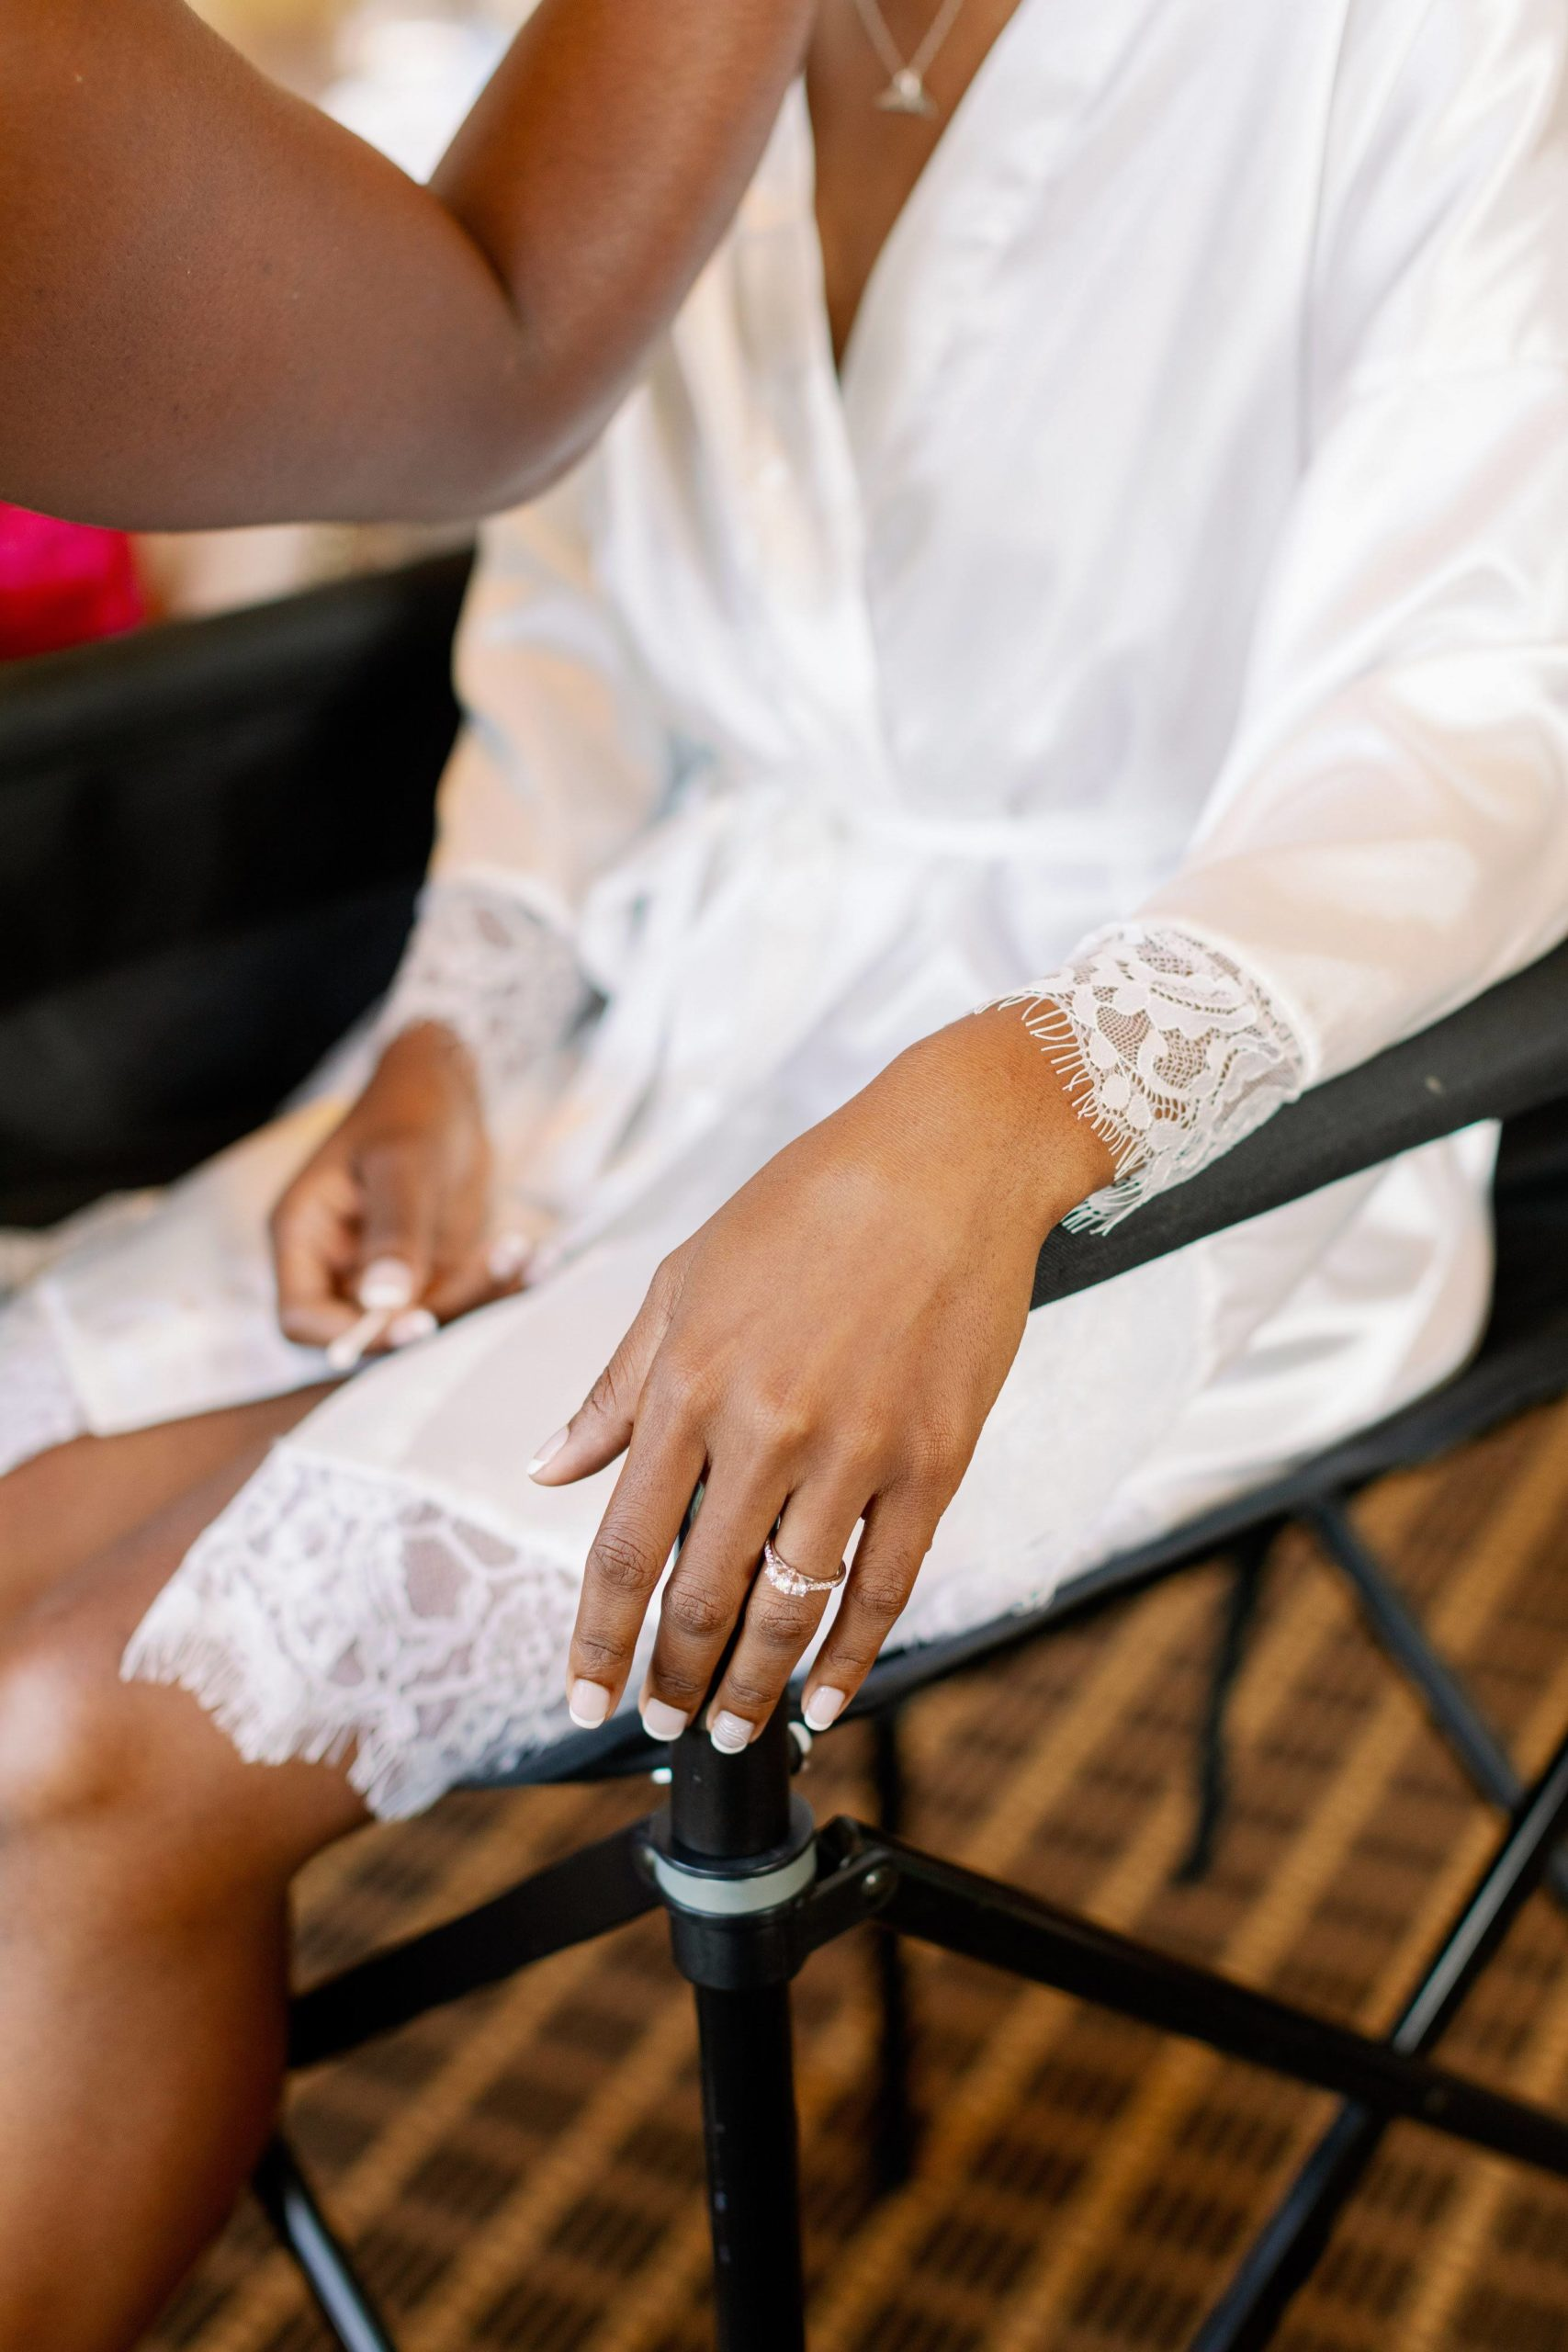 Bride sitting on black chair in white robe with hand showing engagement ring